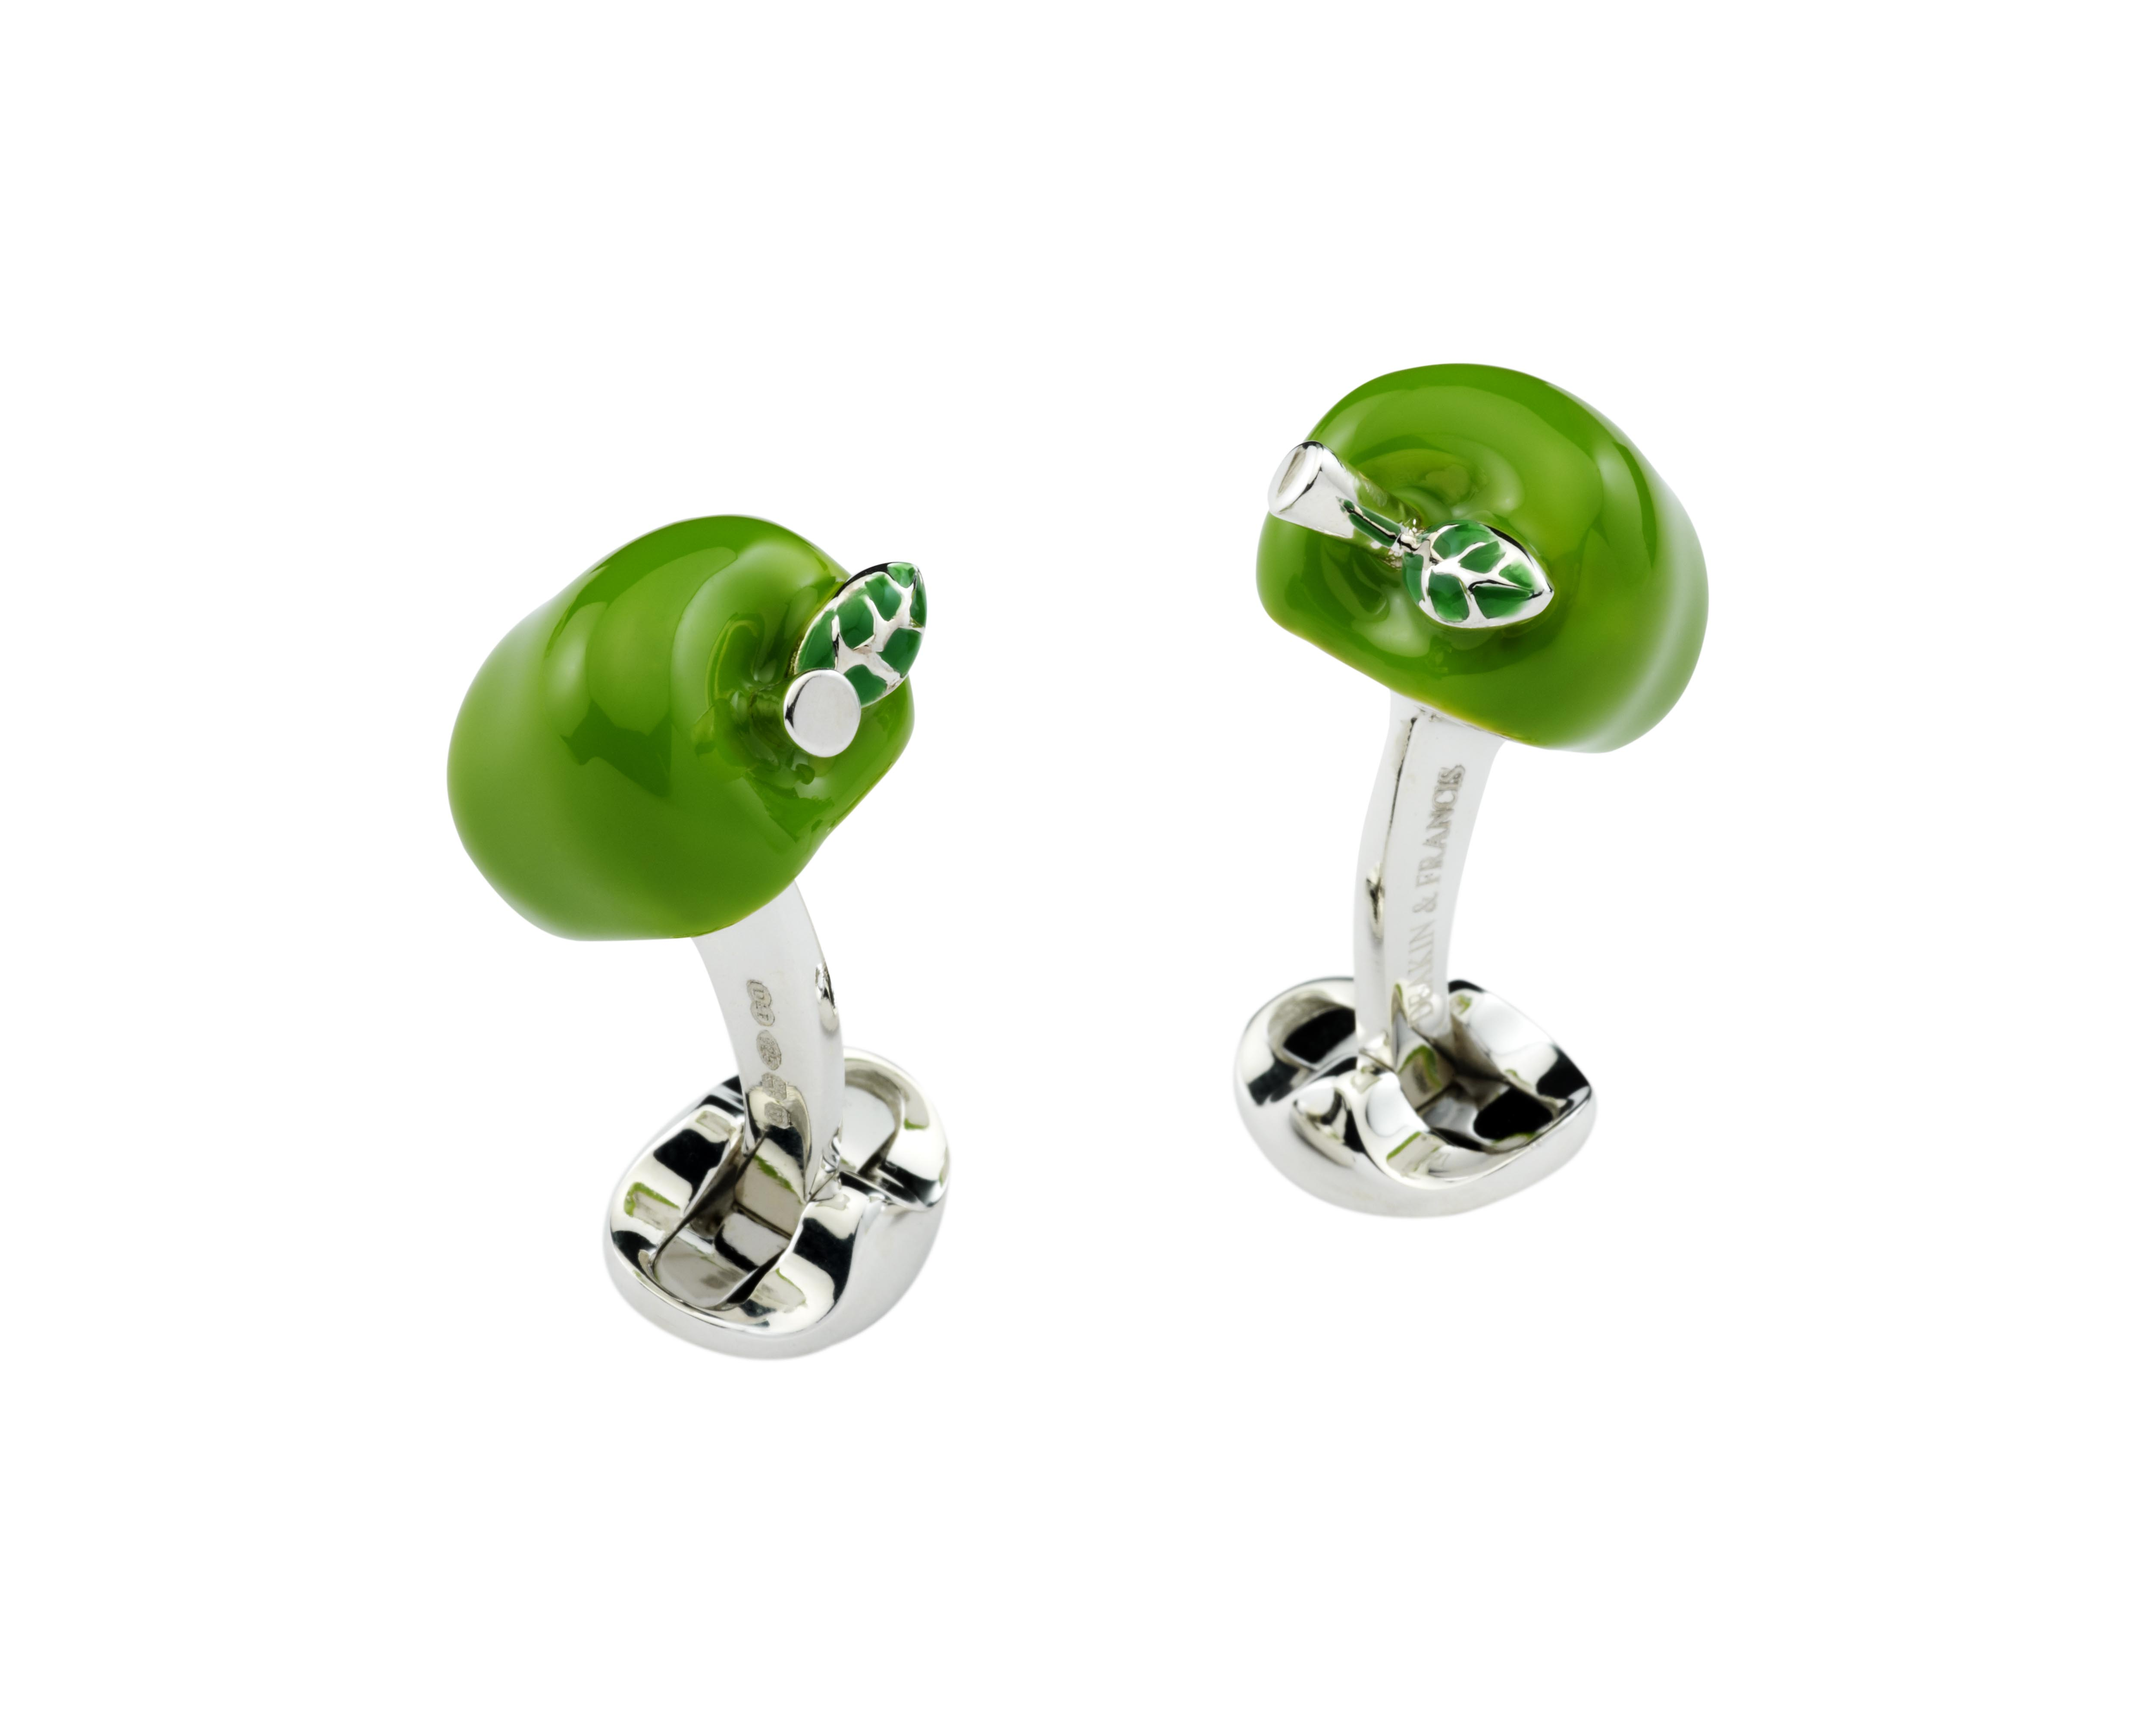 Green Apples for great cuffs